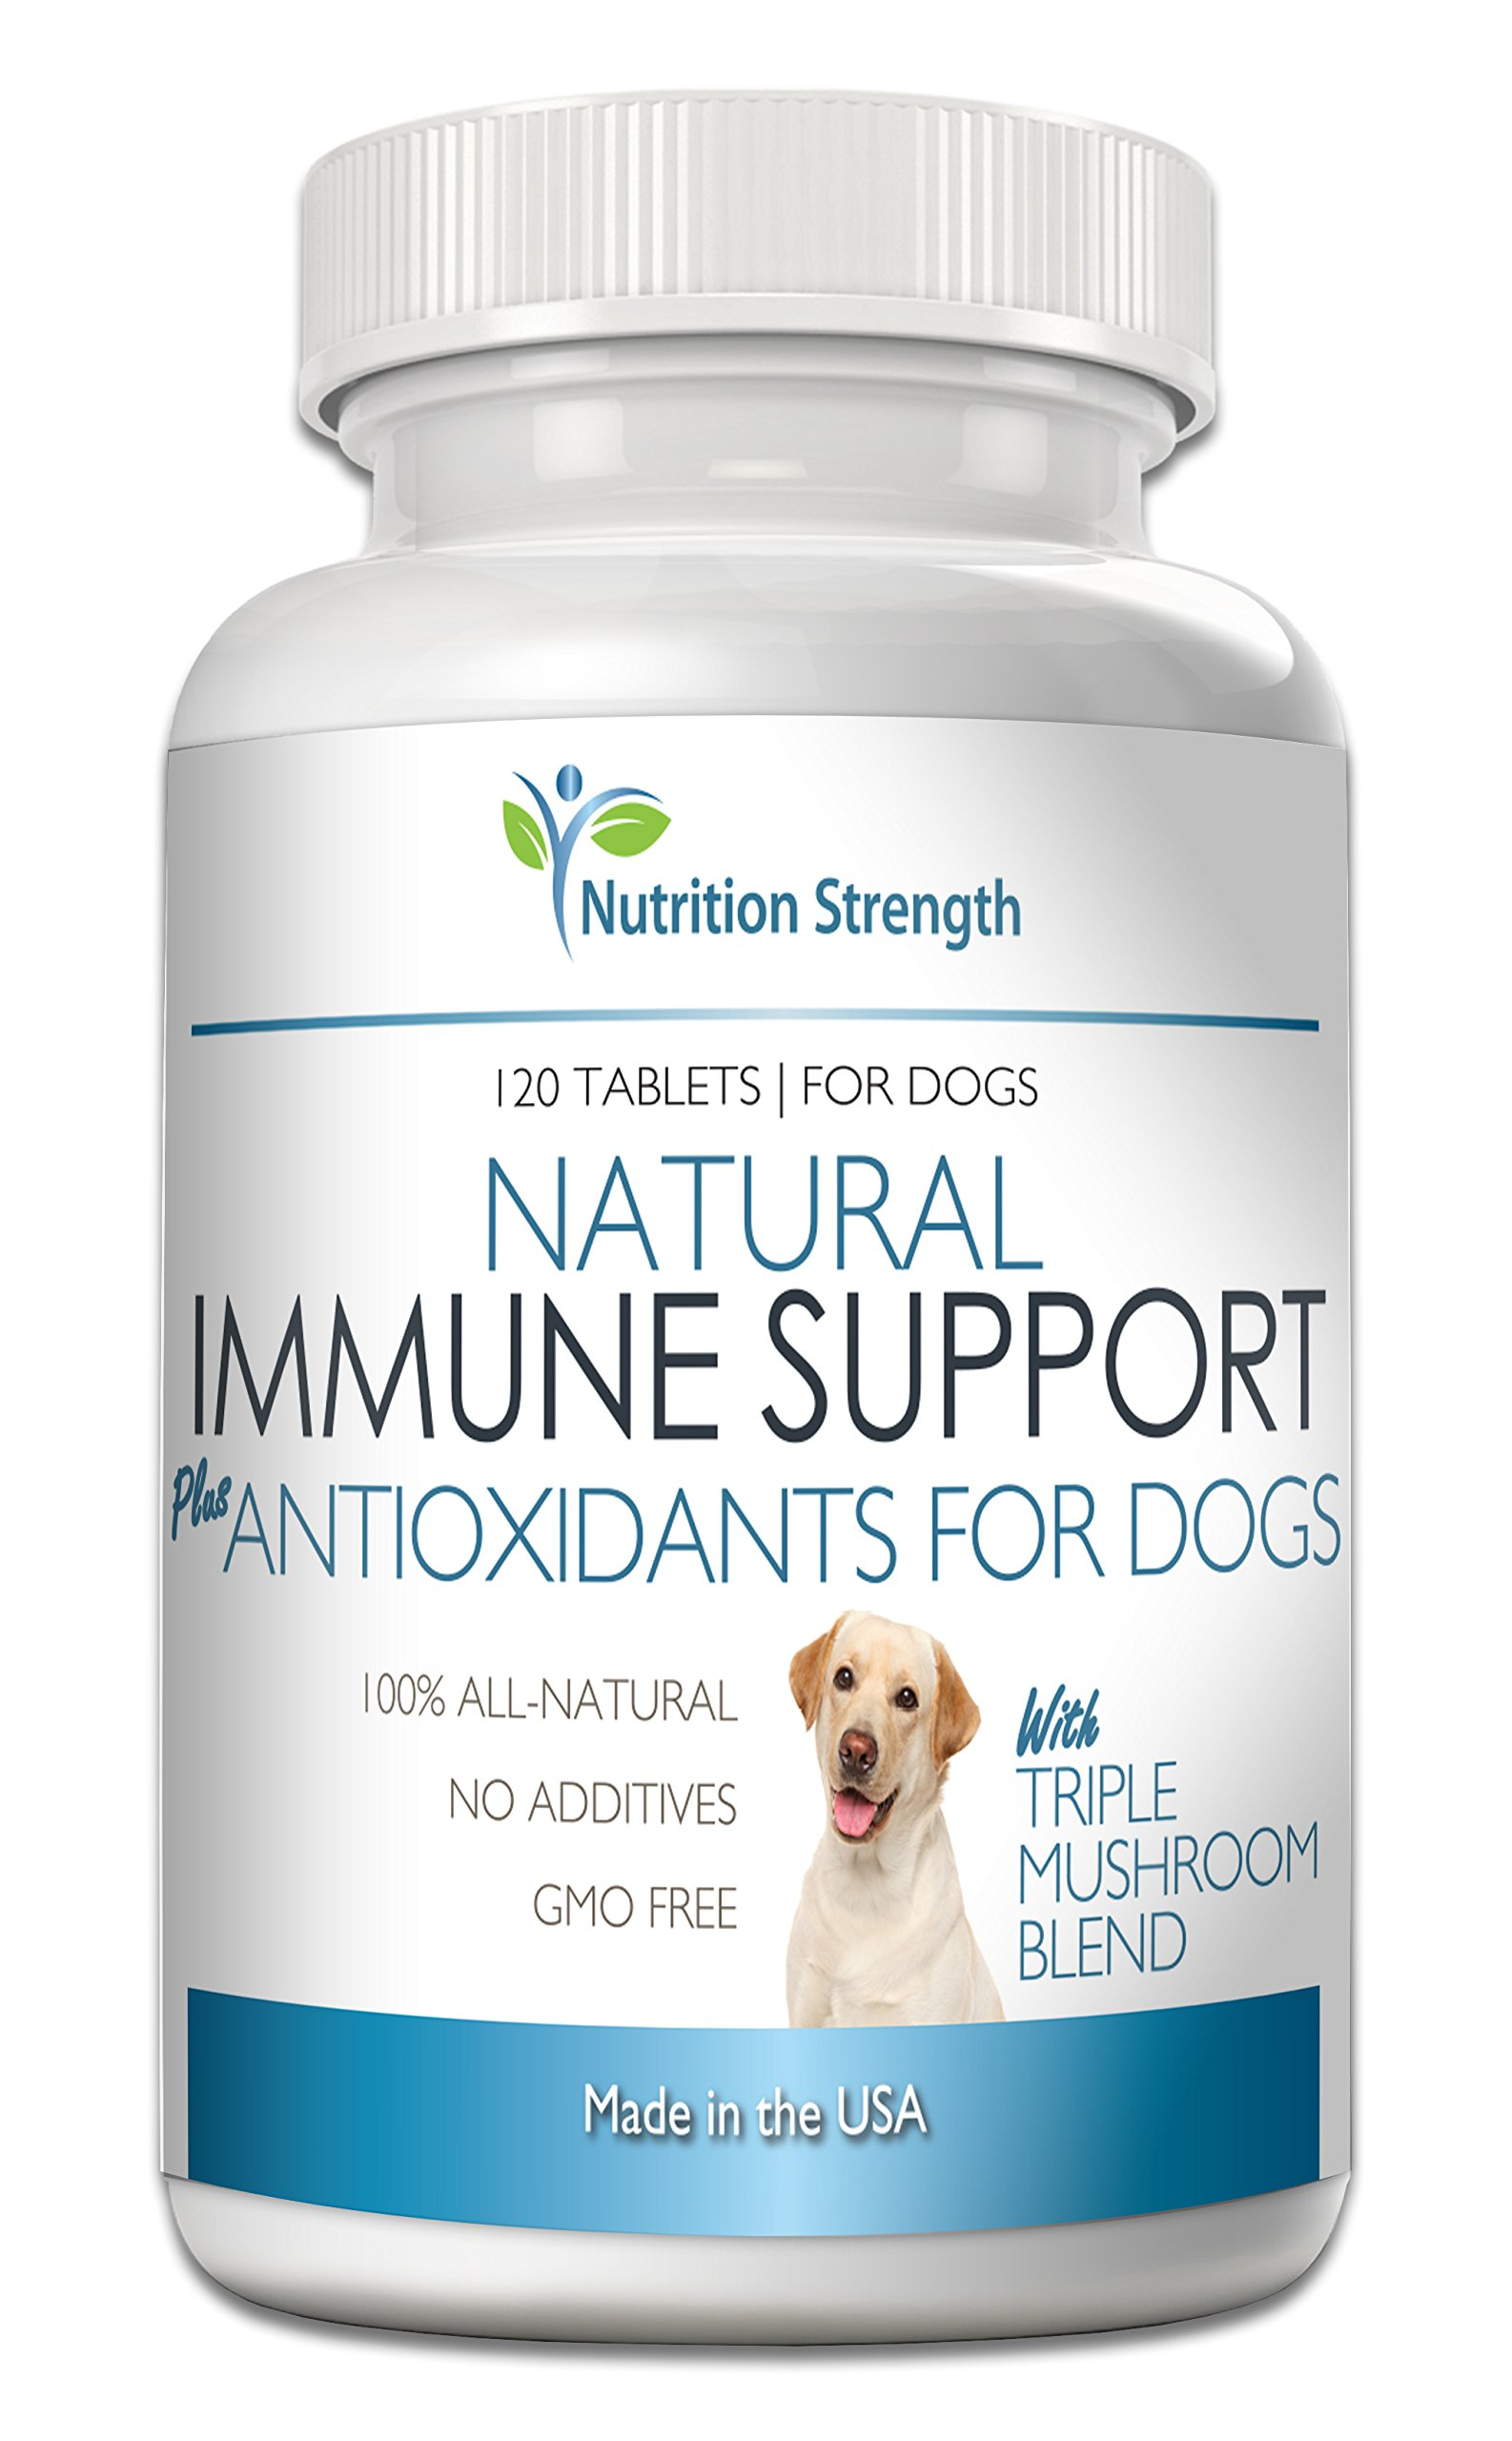 Nutrition Strength Natural Immune Support for Dogs Plus Antioxidant, 120 Chewable Tablets